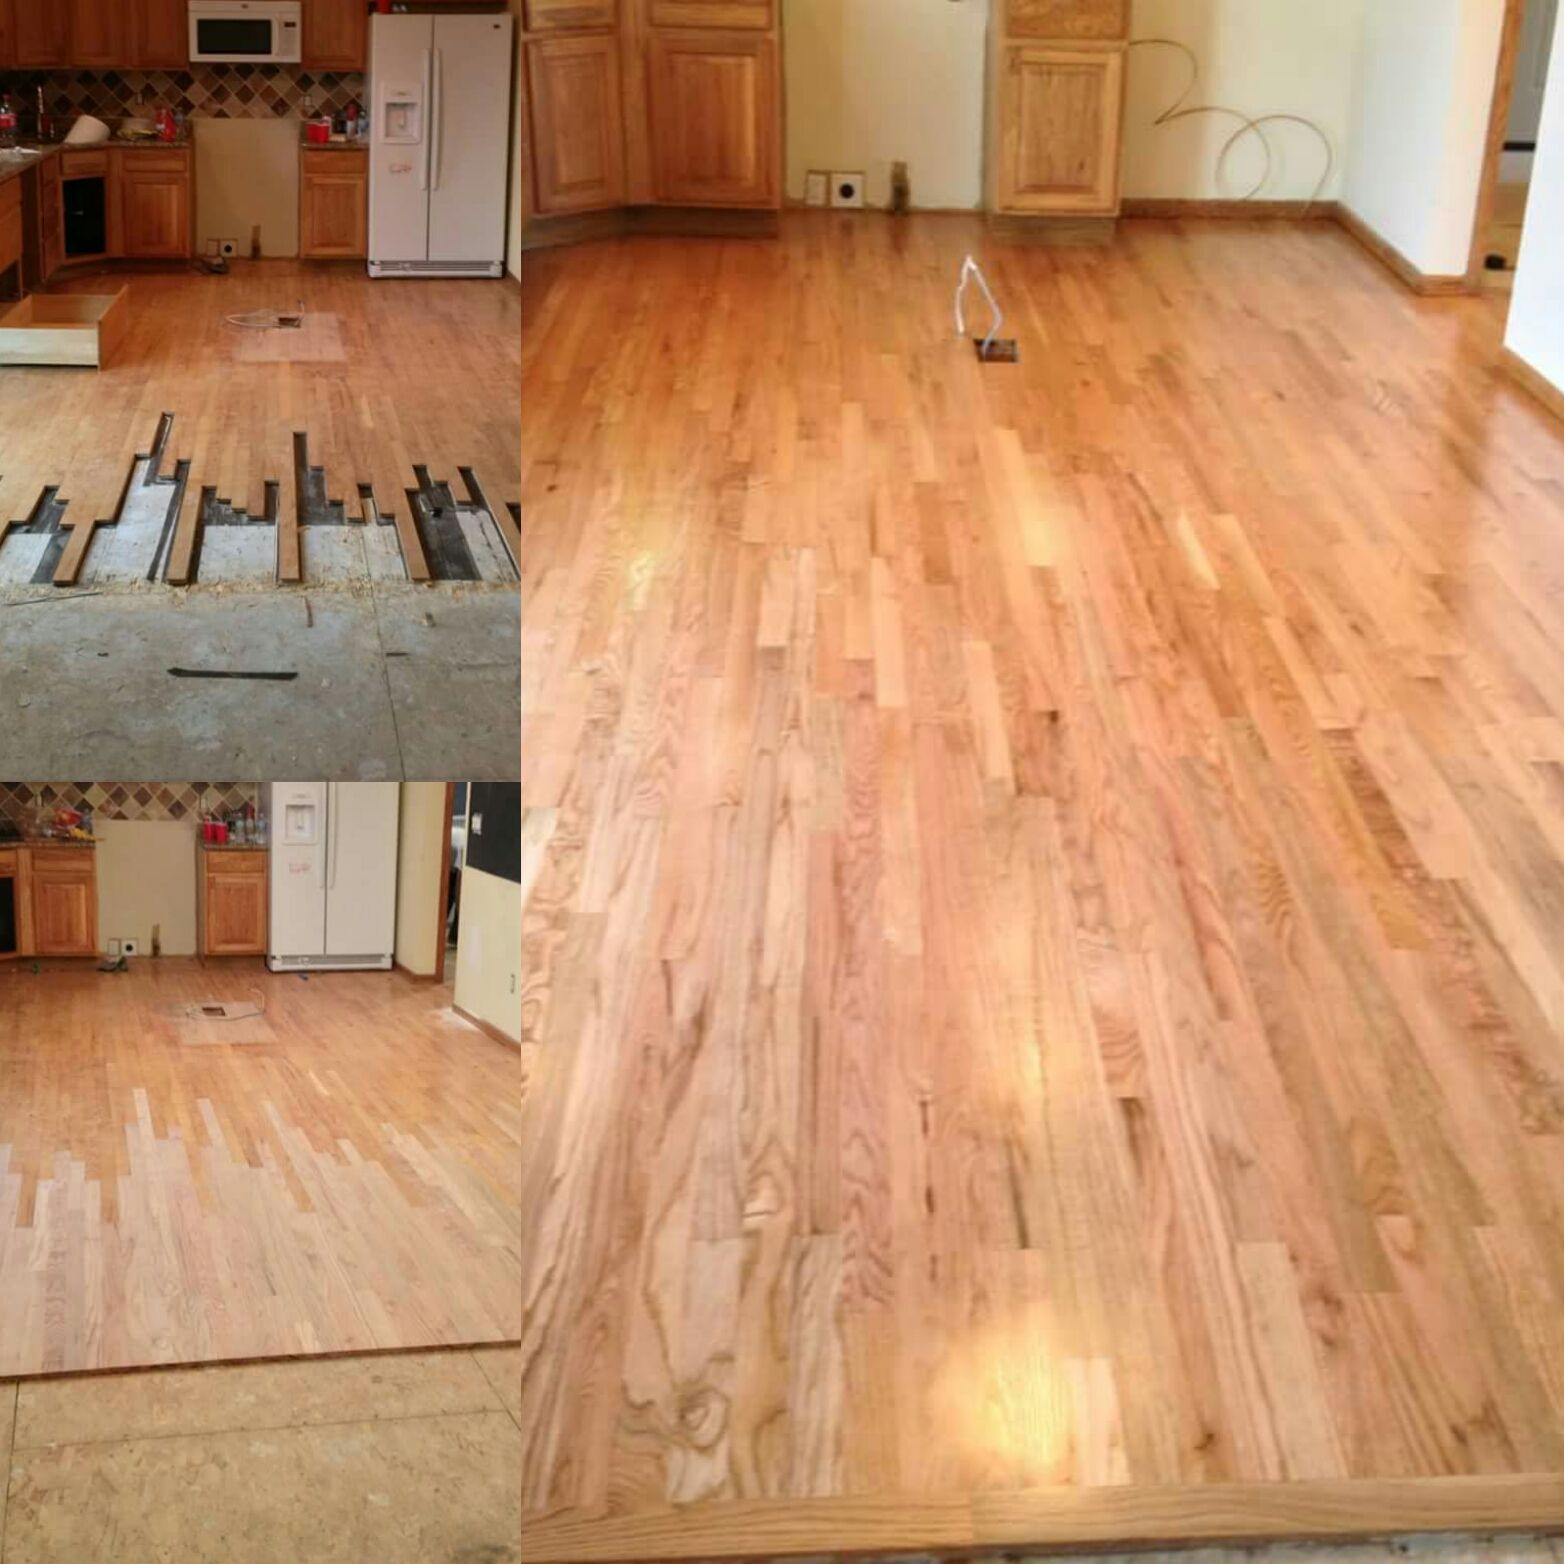 Want To Add To Your Hardwood Floors Mr Sandless Can Add To Or Install Brand New Floors For You We Are Quick Done In A Hardwood Floors Flooring Installation